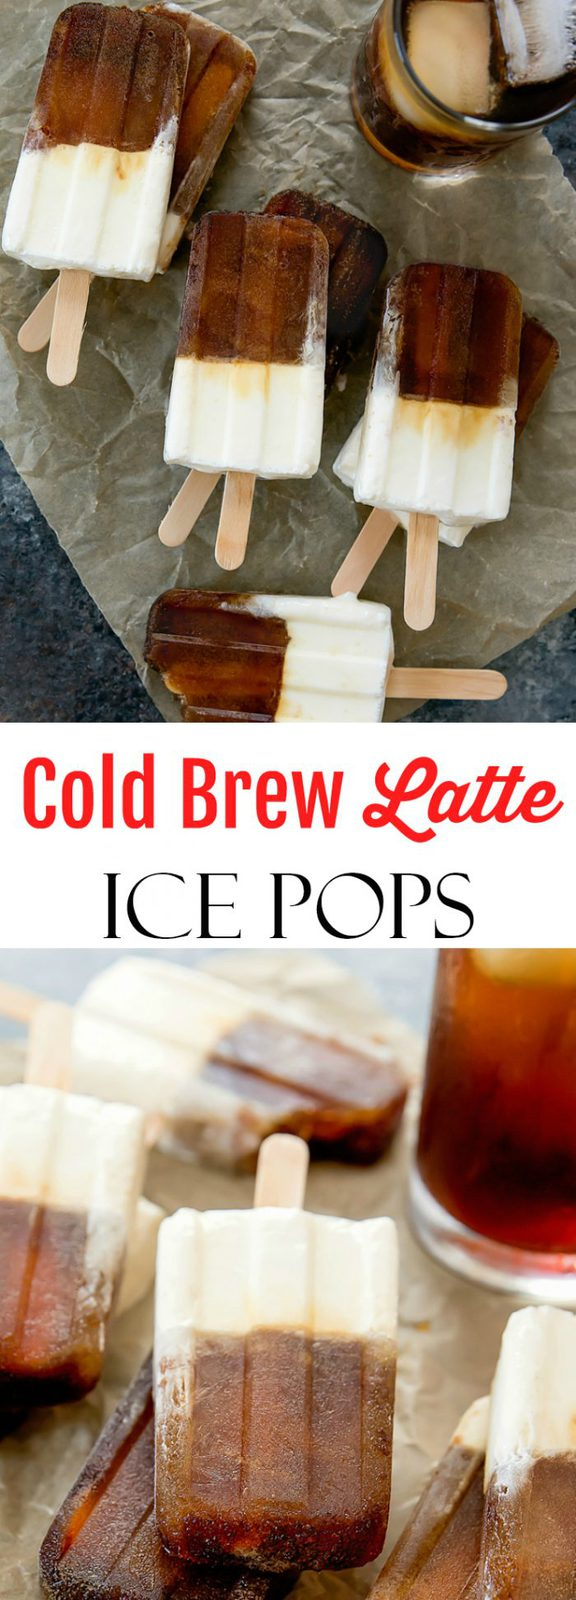 Cold Brew Coffee Latte Popsicles